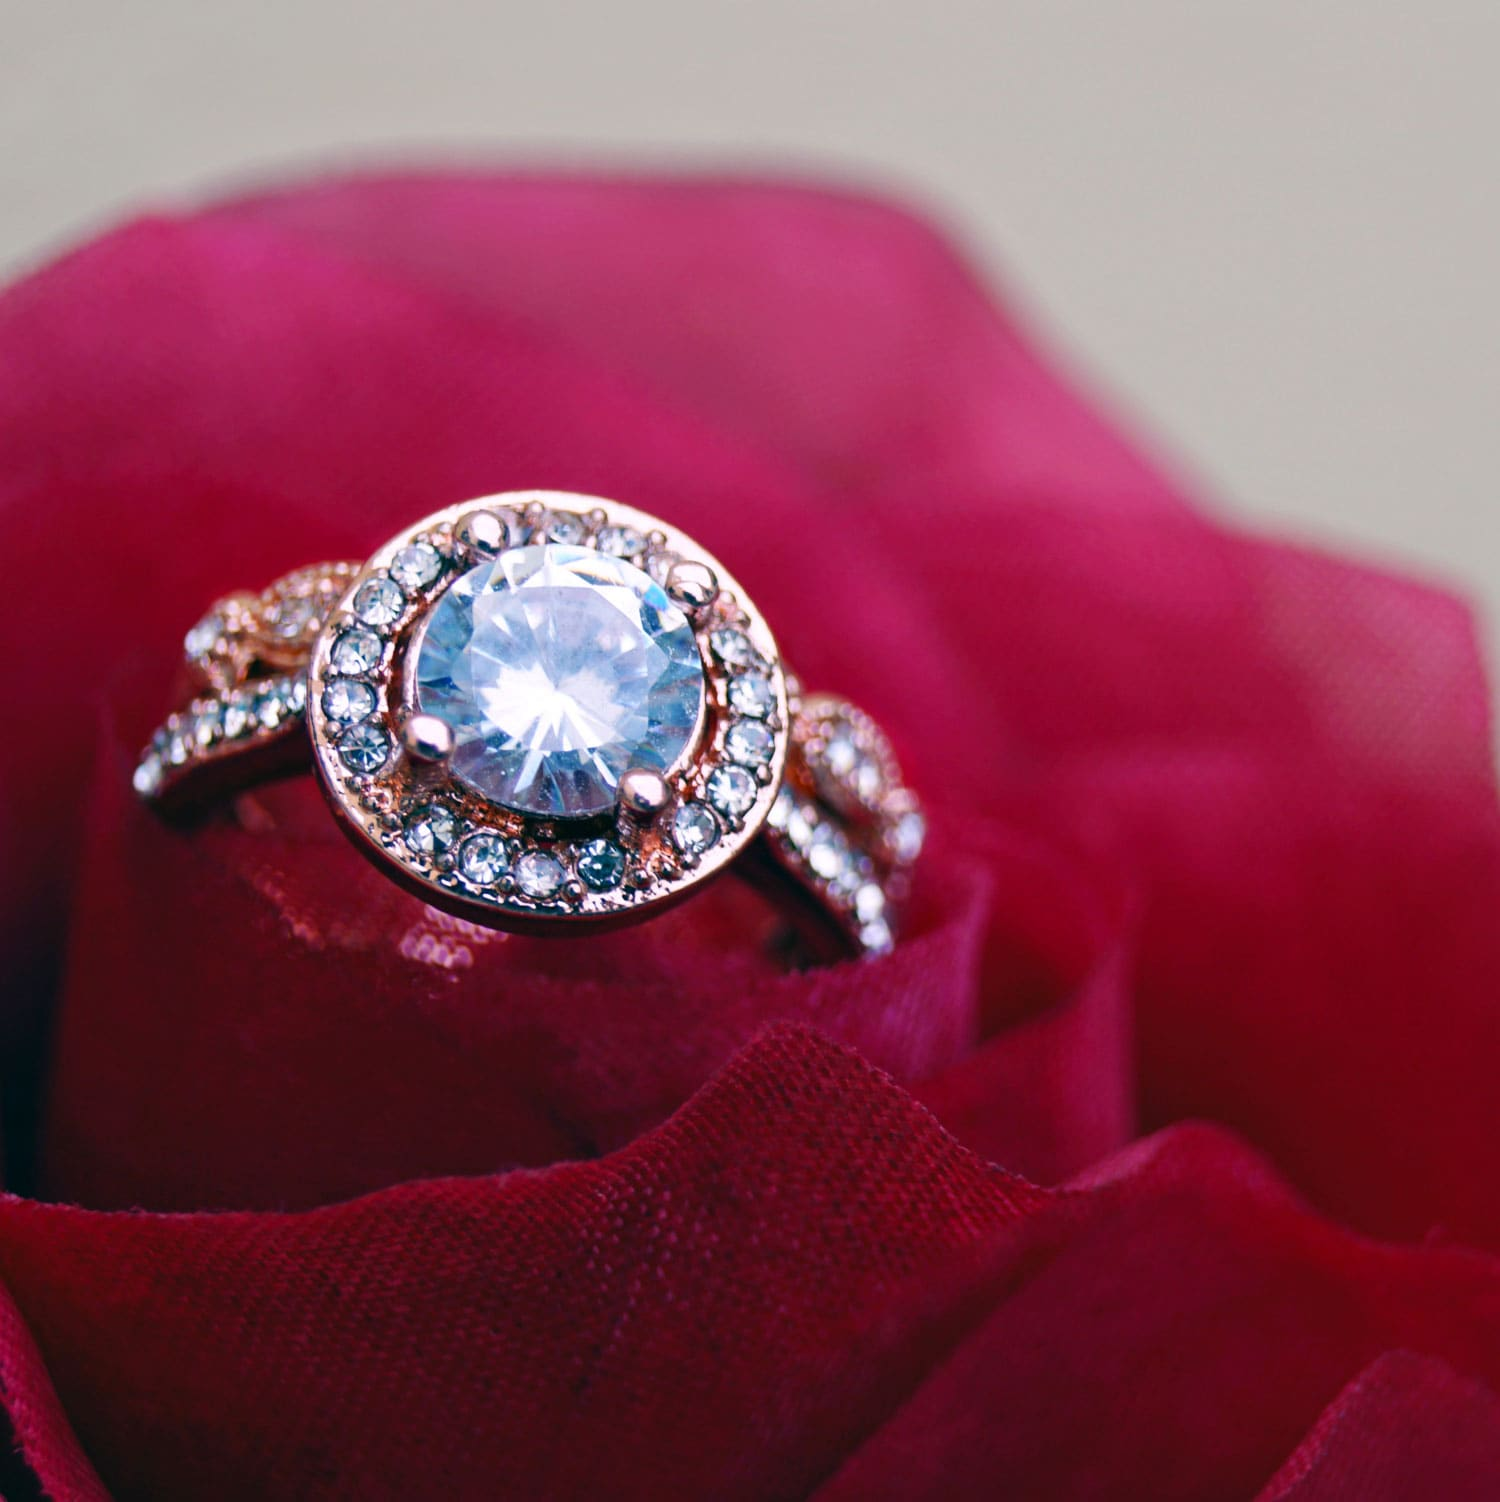 diamond ring inside a red rose